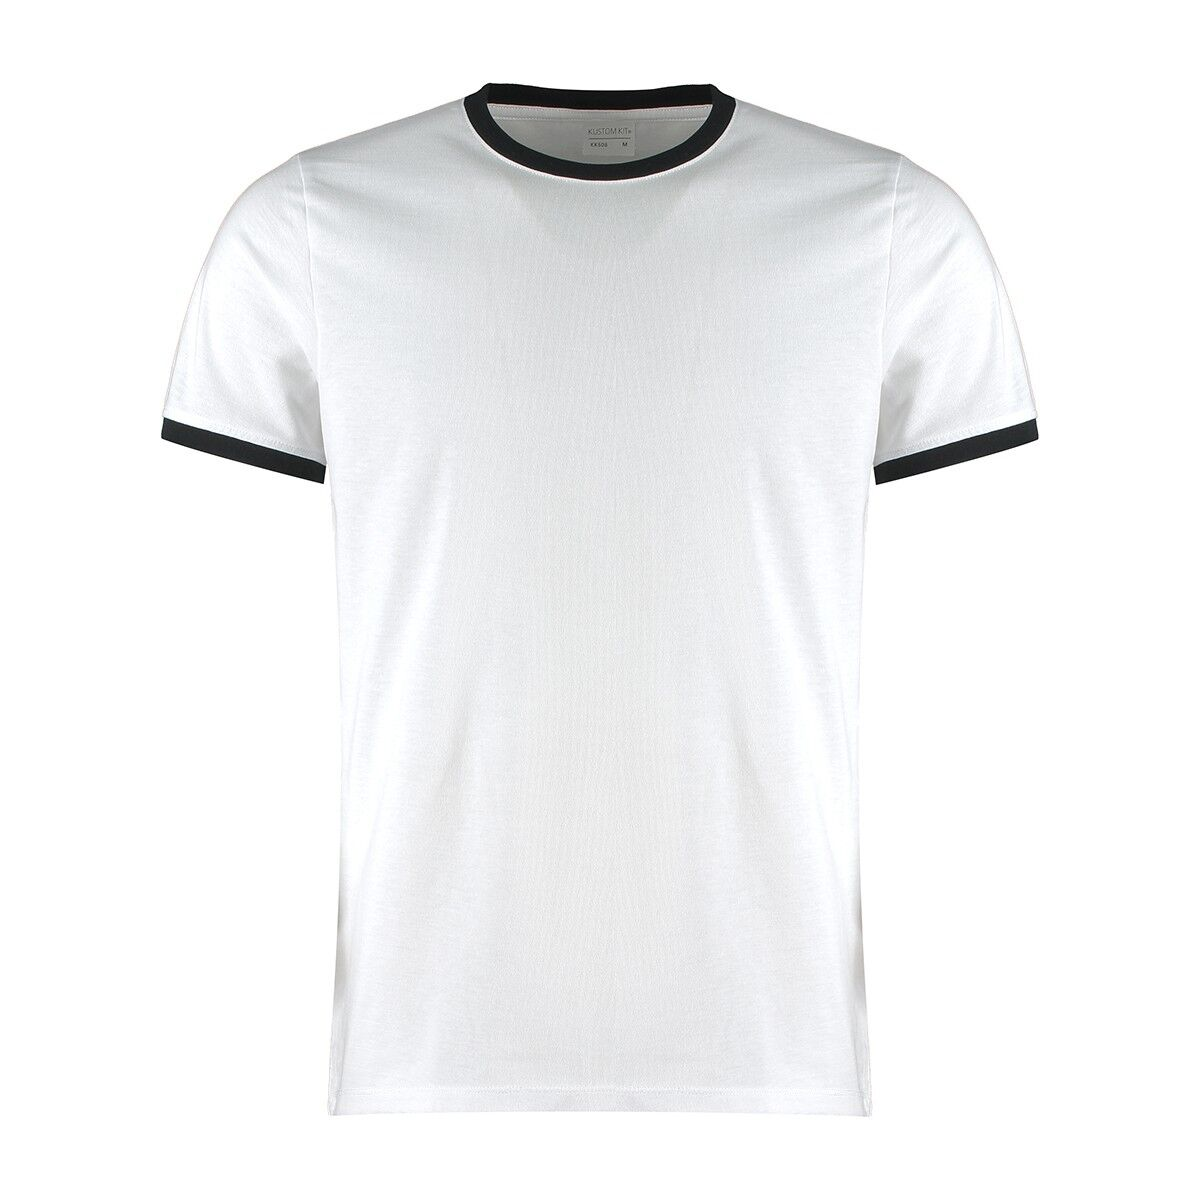 Contrast Ring Tee in Black/White